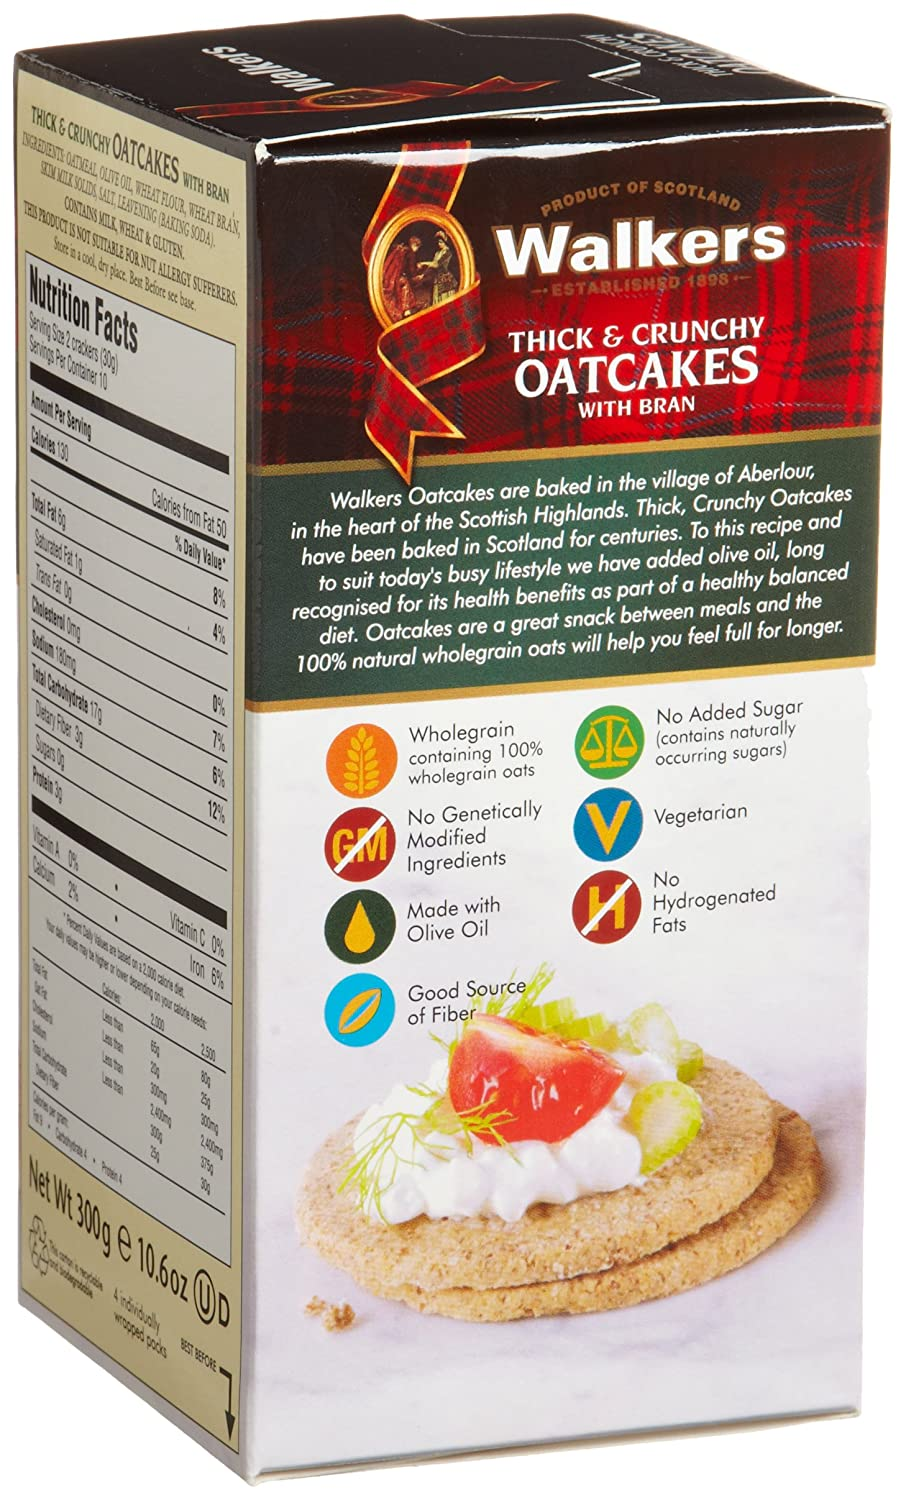 Amazon.com: Walkers Shortbread Thick & Crunchy Oatcakes with Bran, 10.6 Ounce (Pack of 4)